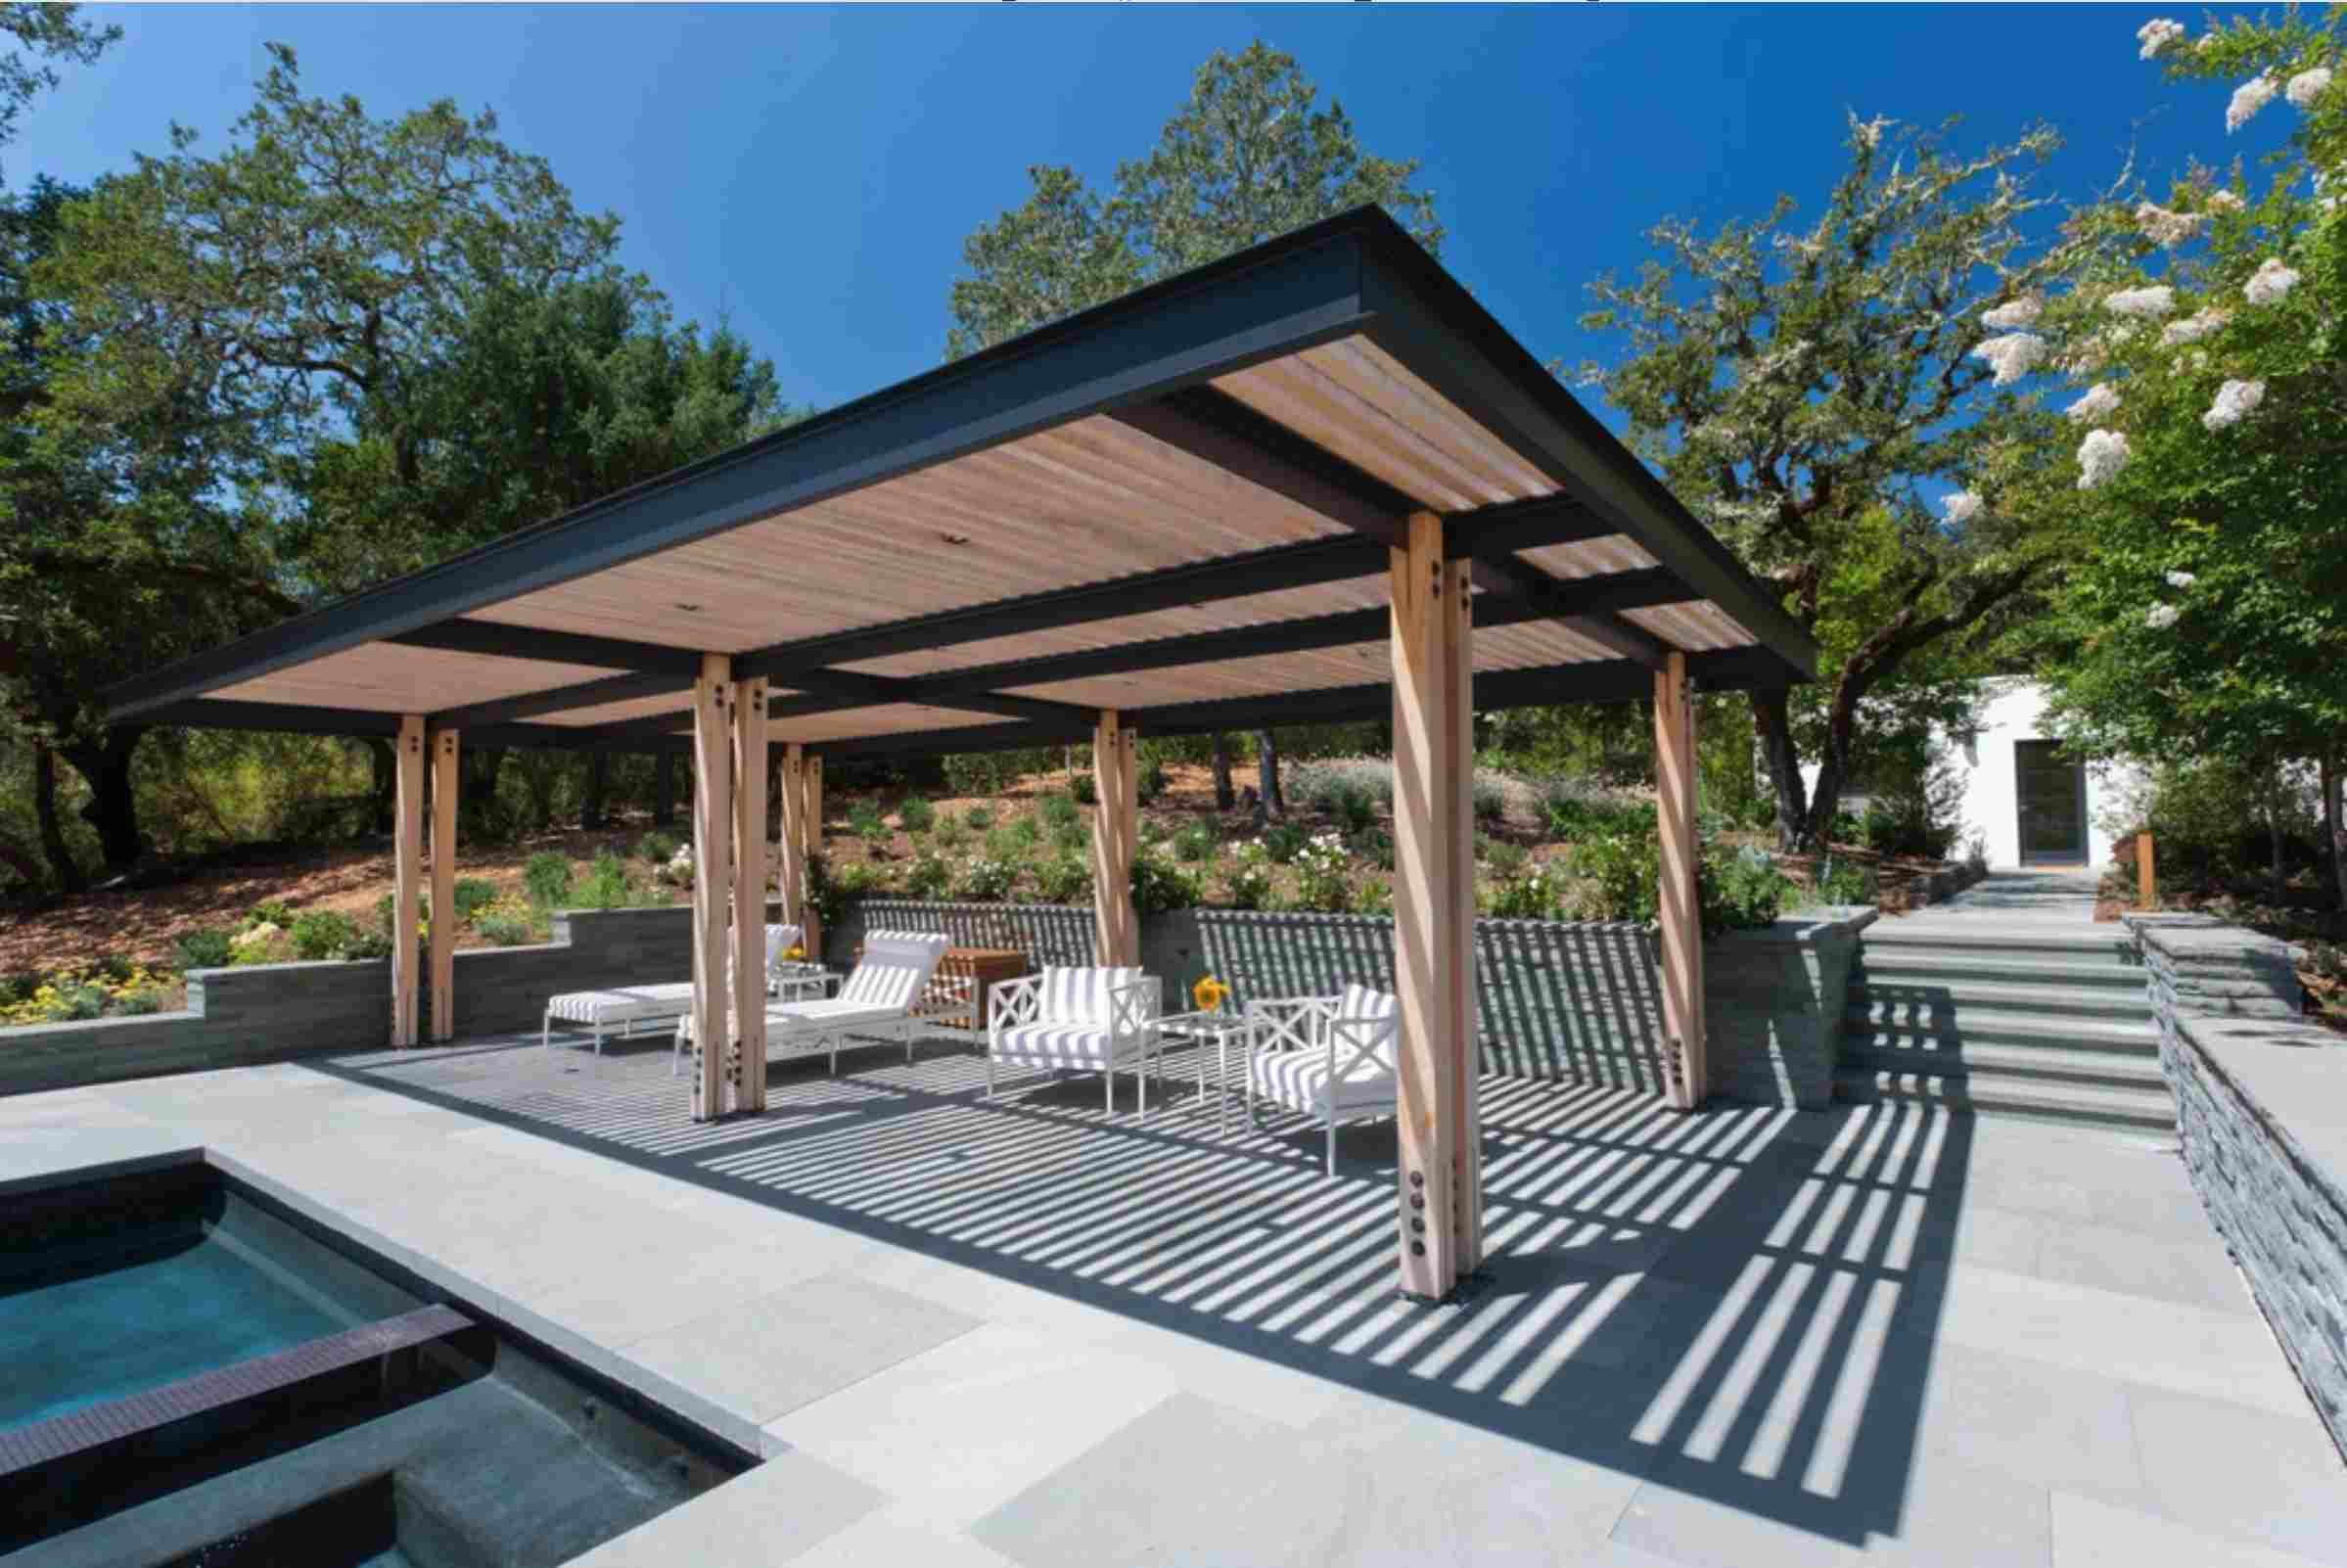 covered patio with lawn furniture